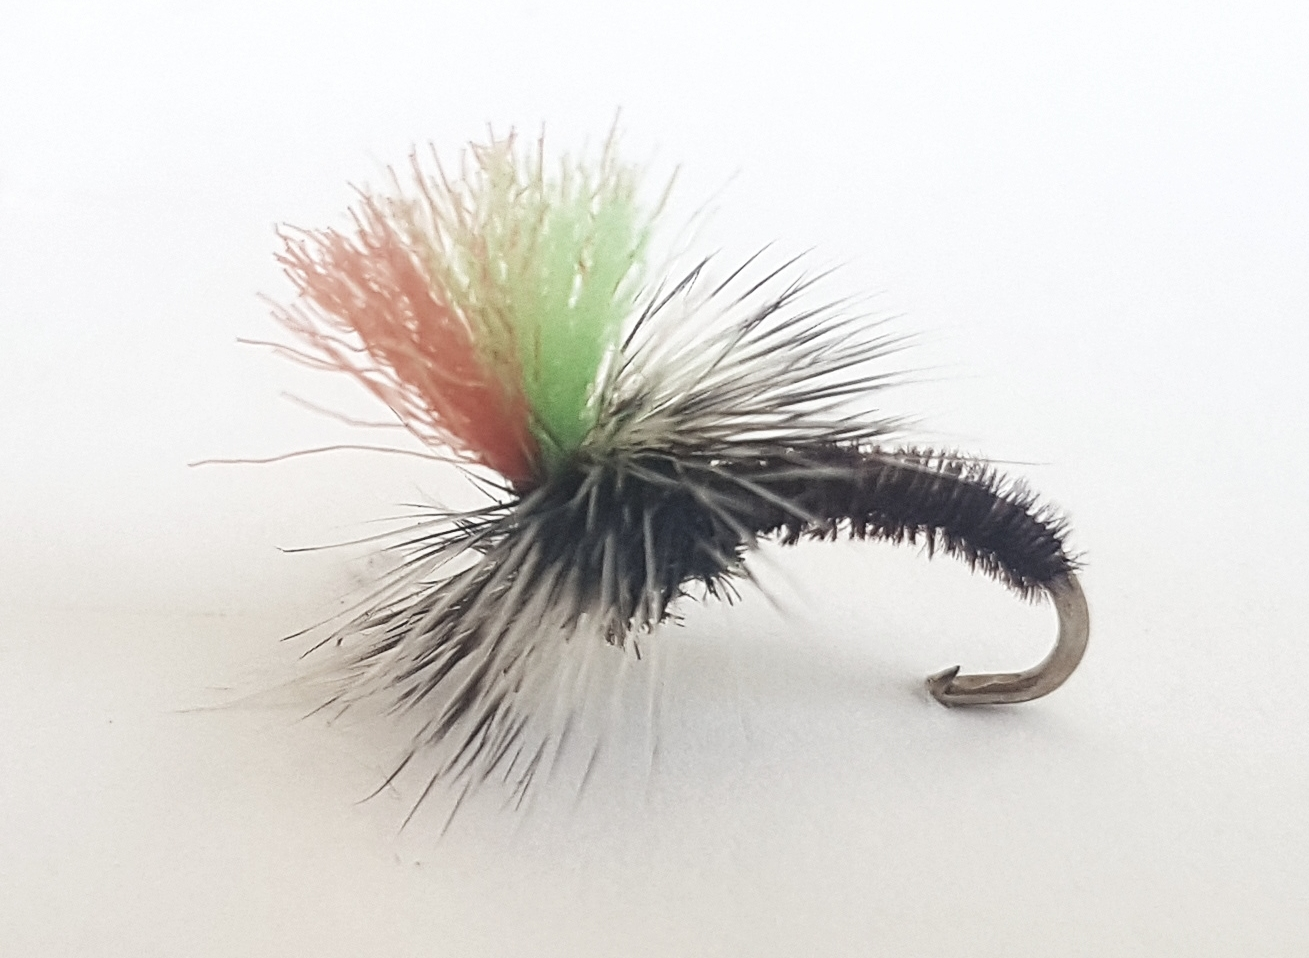 PHEASANTS TAIL INDICATOR KLINKHAMMER Dry Trout fly Fishing Dragonflies